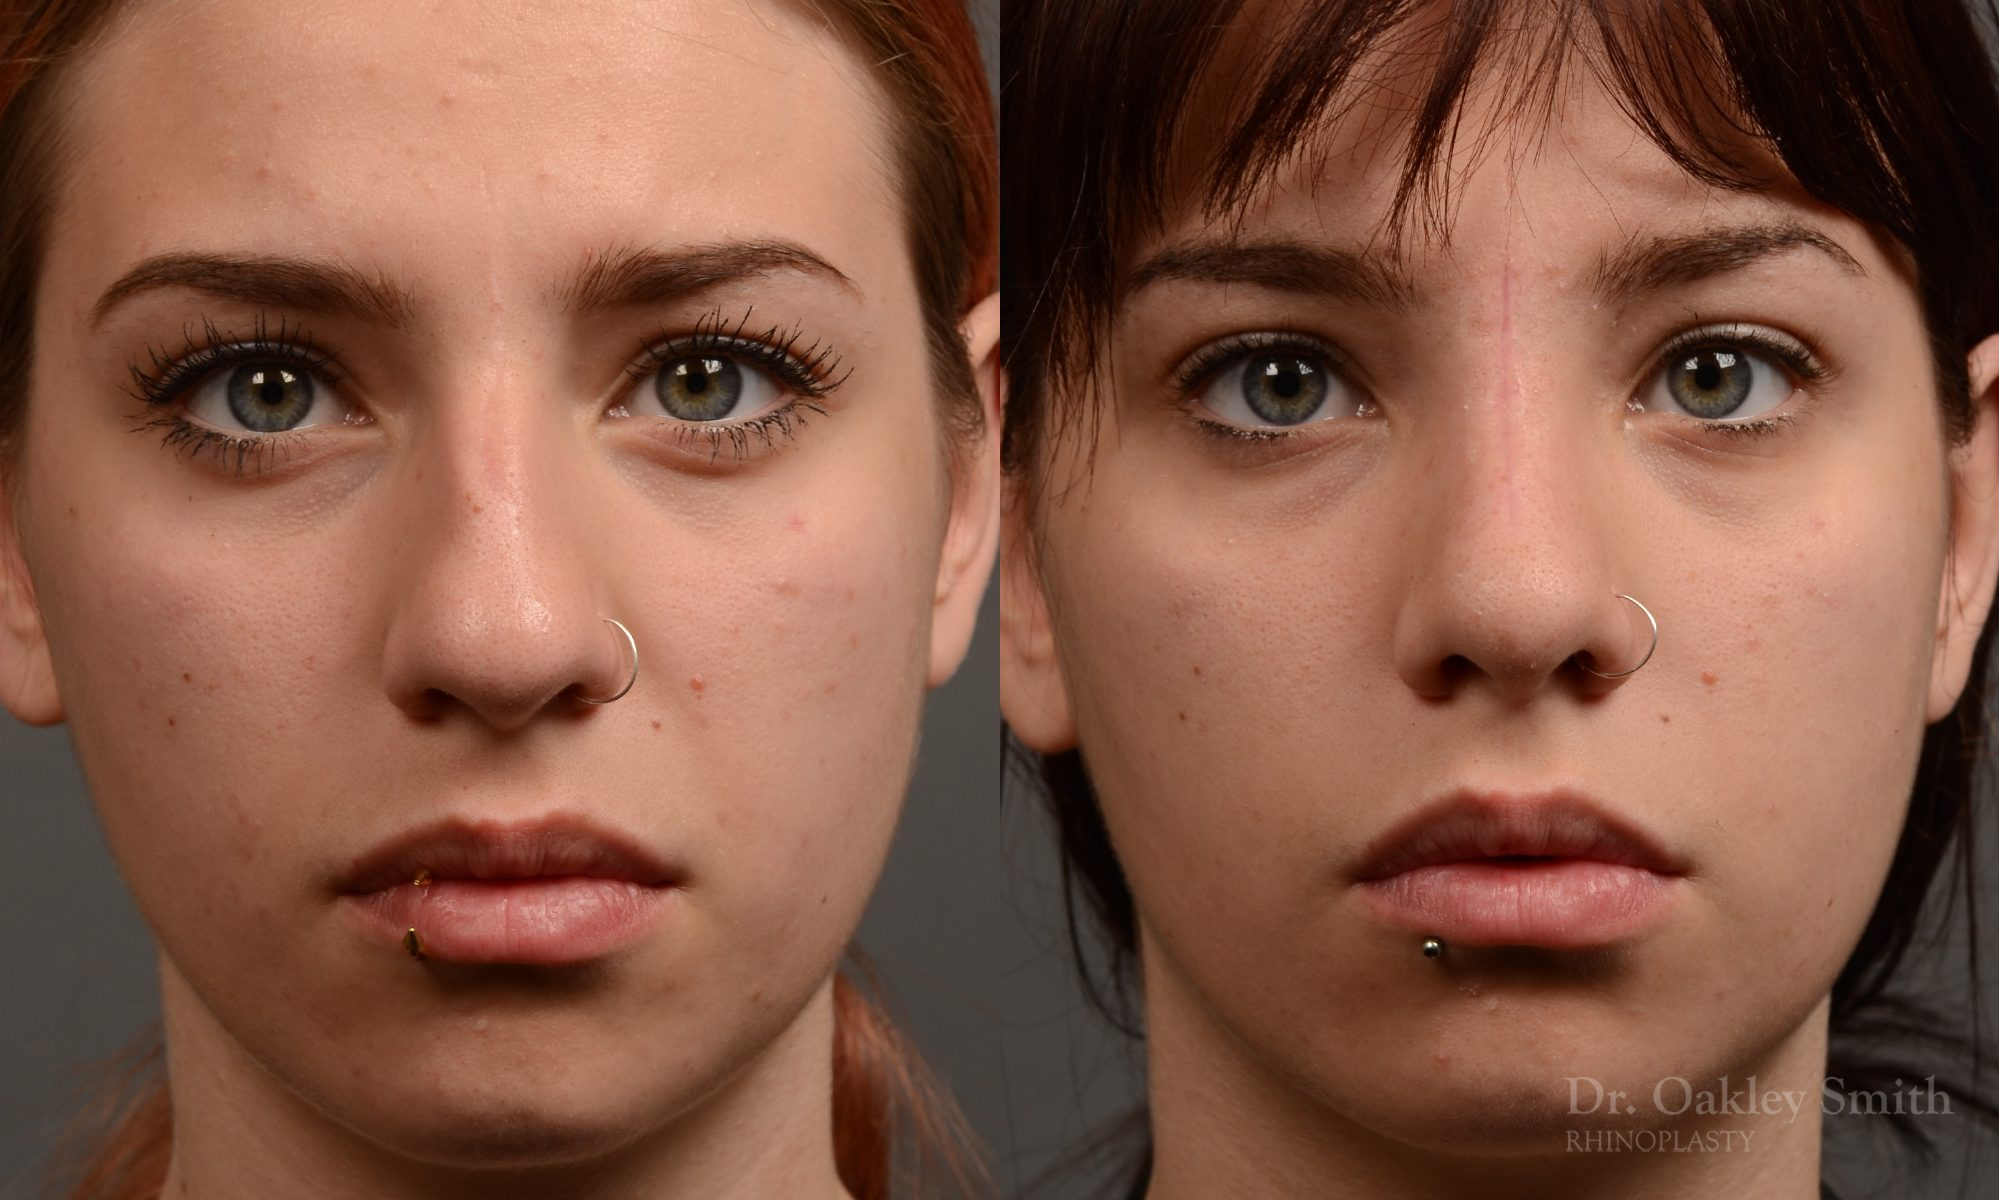 Rhinoplasty hump reduction on young women